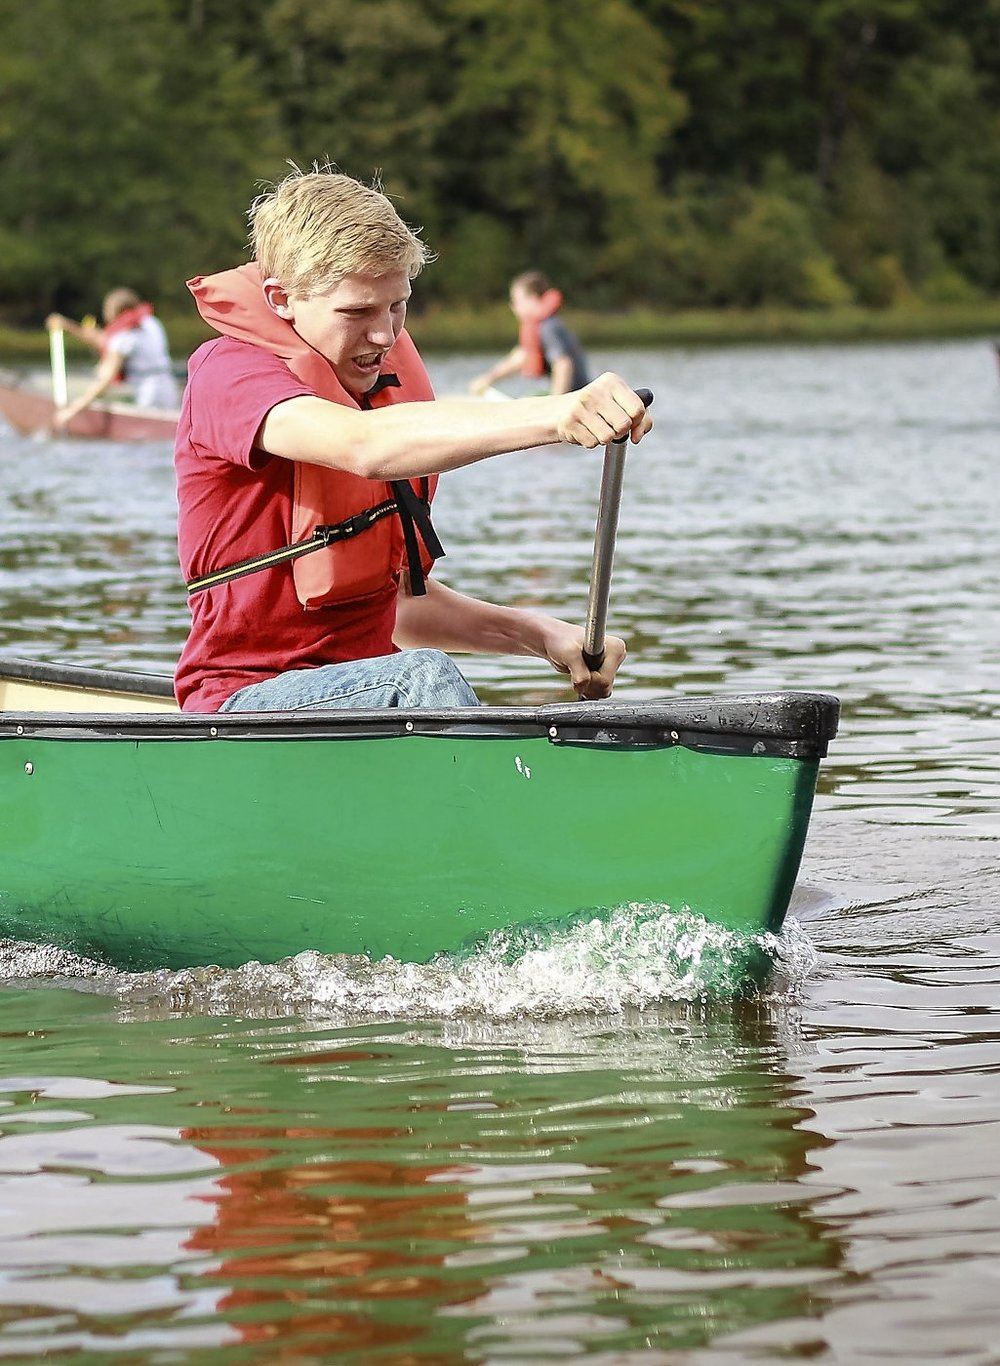 Silas in the bow of his and Laura's canoe - capturing second place for their canoe race!